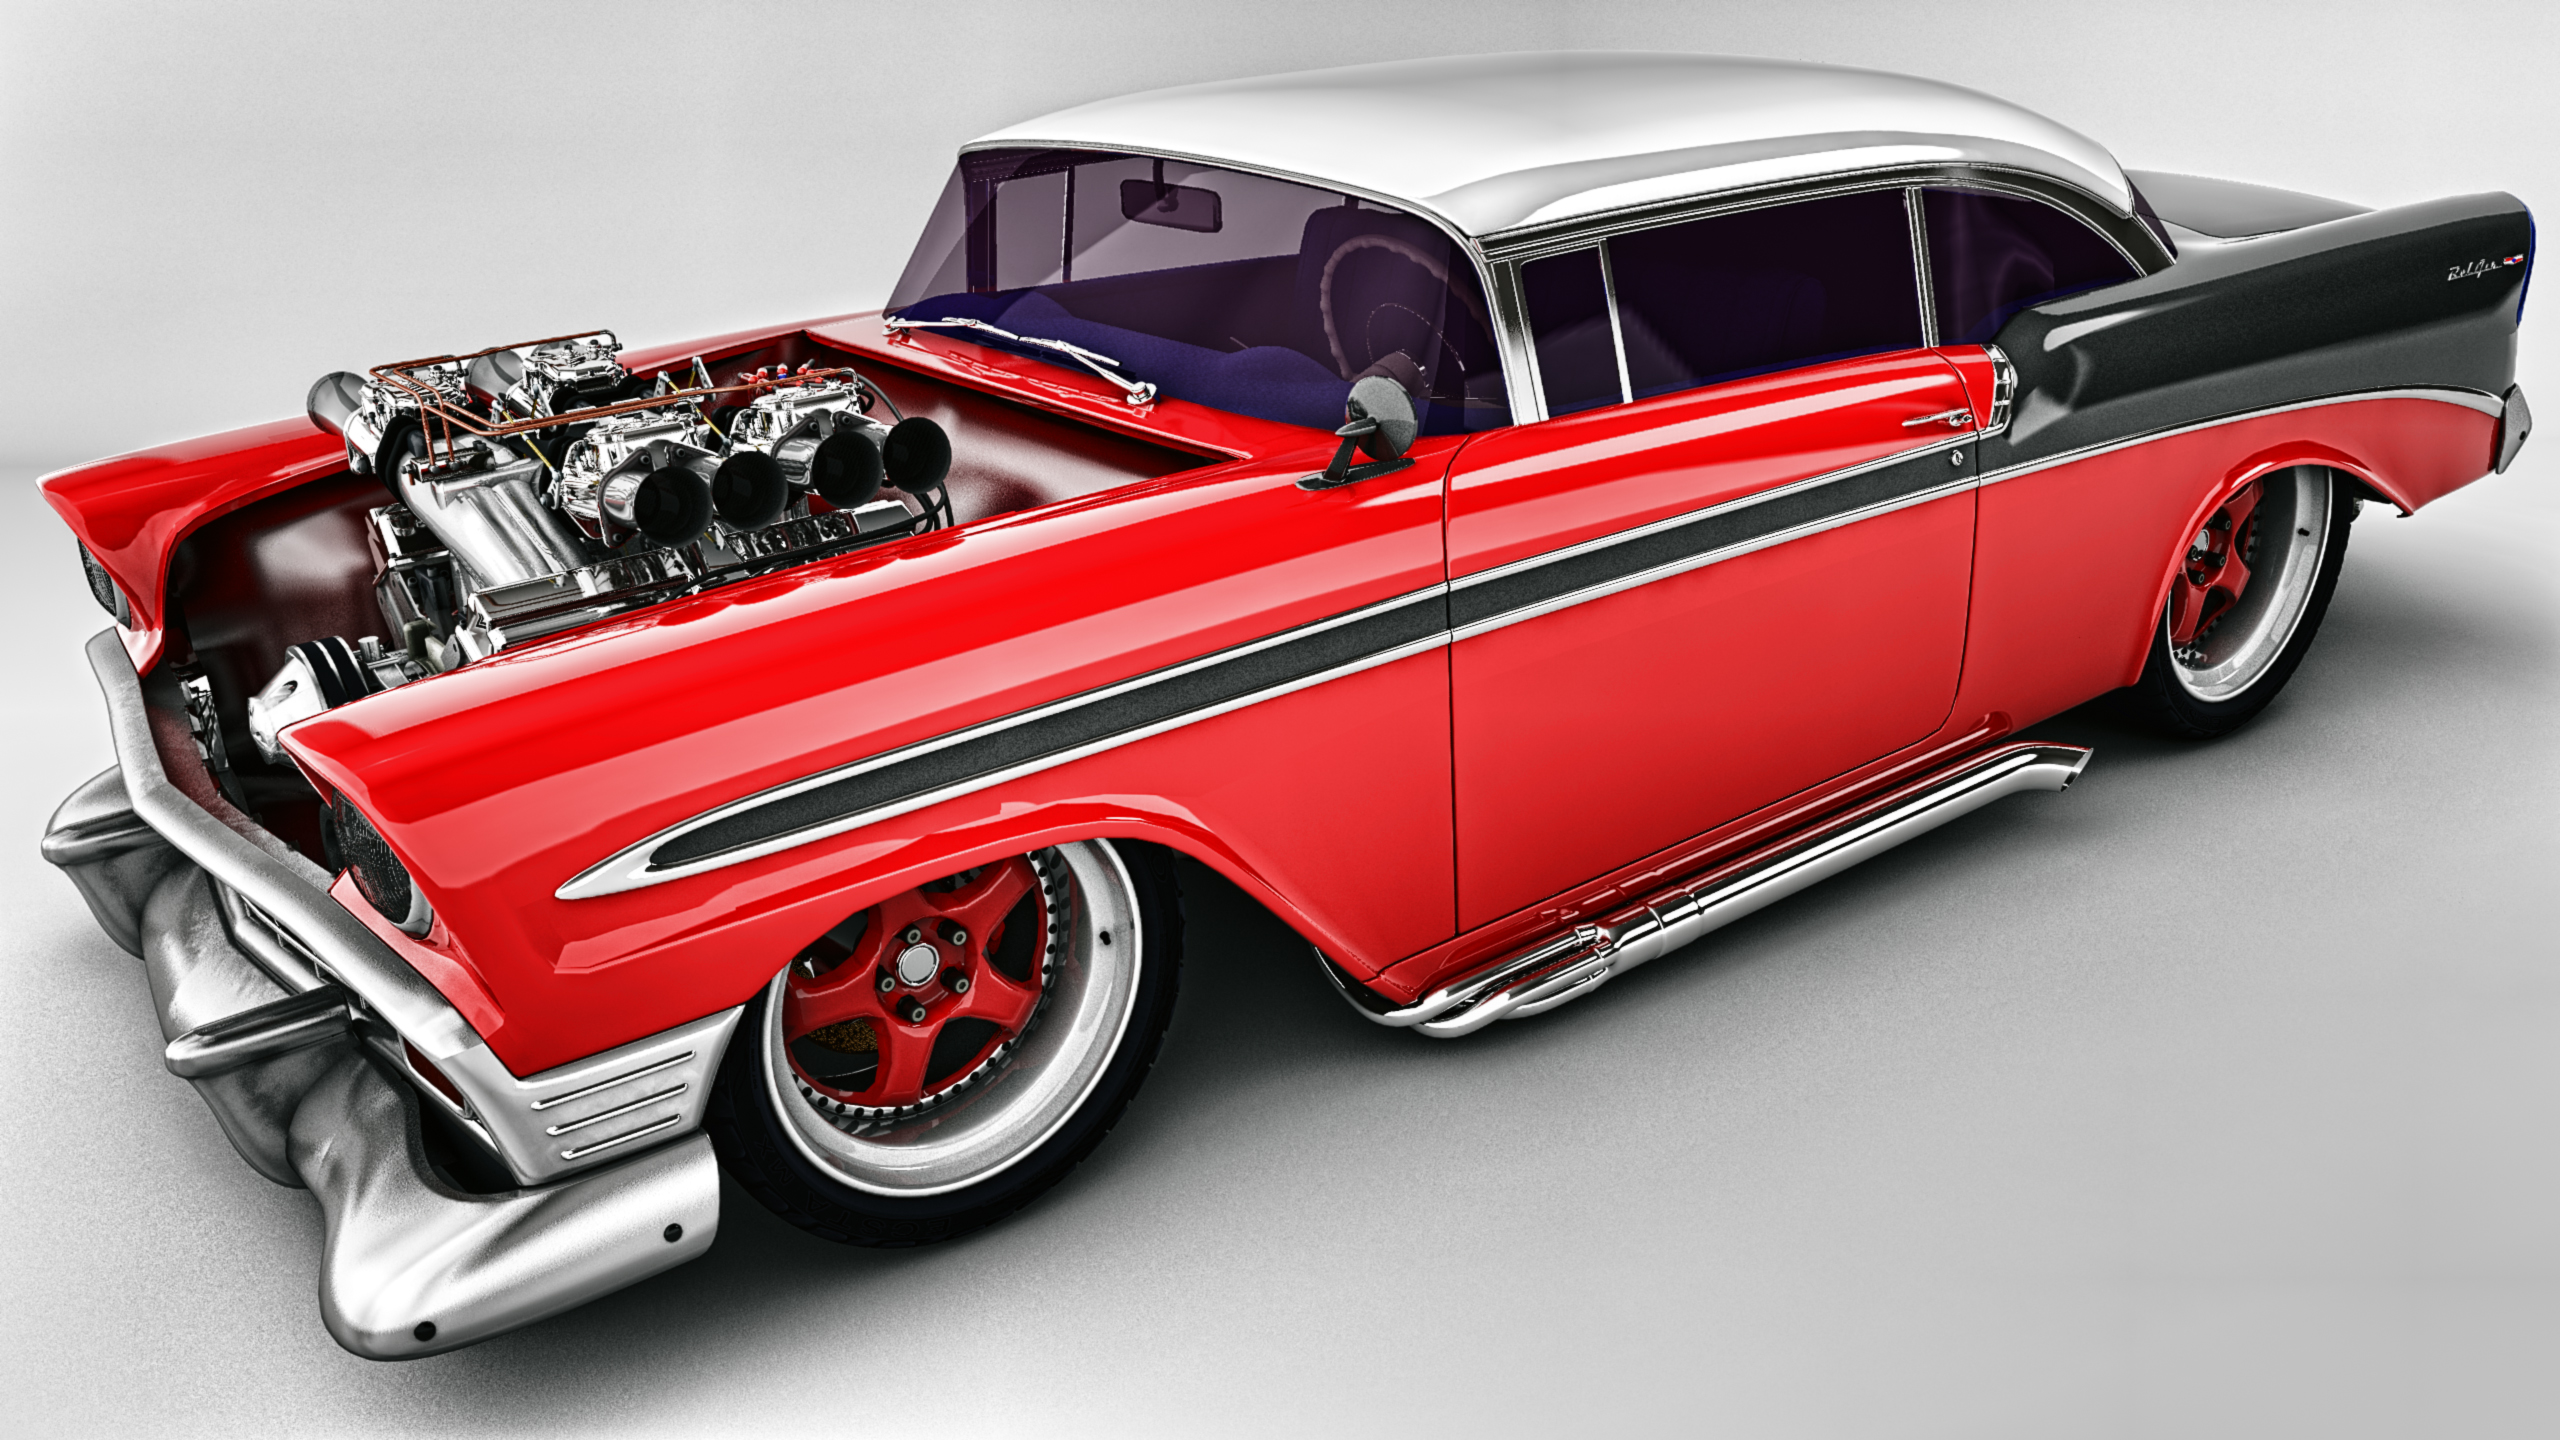 1956 bel air for sale submited images -  1956 Chevy Bel Air Custom By Samcurry